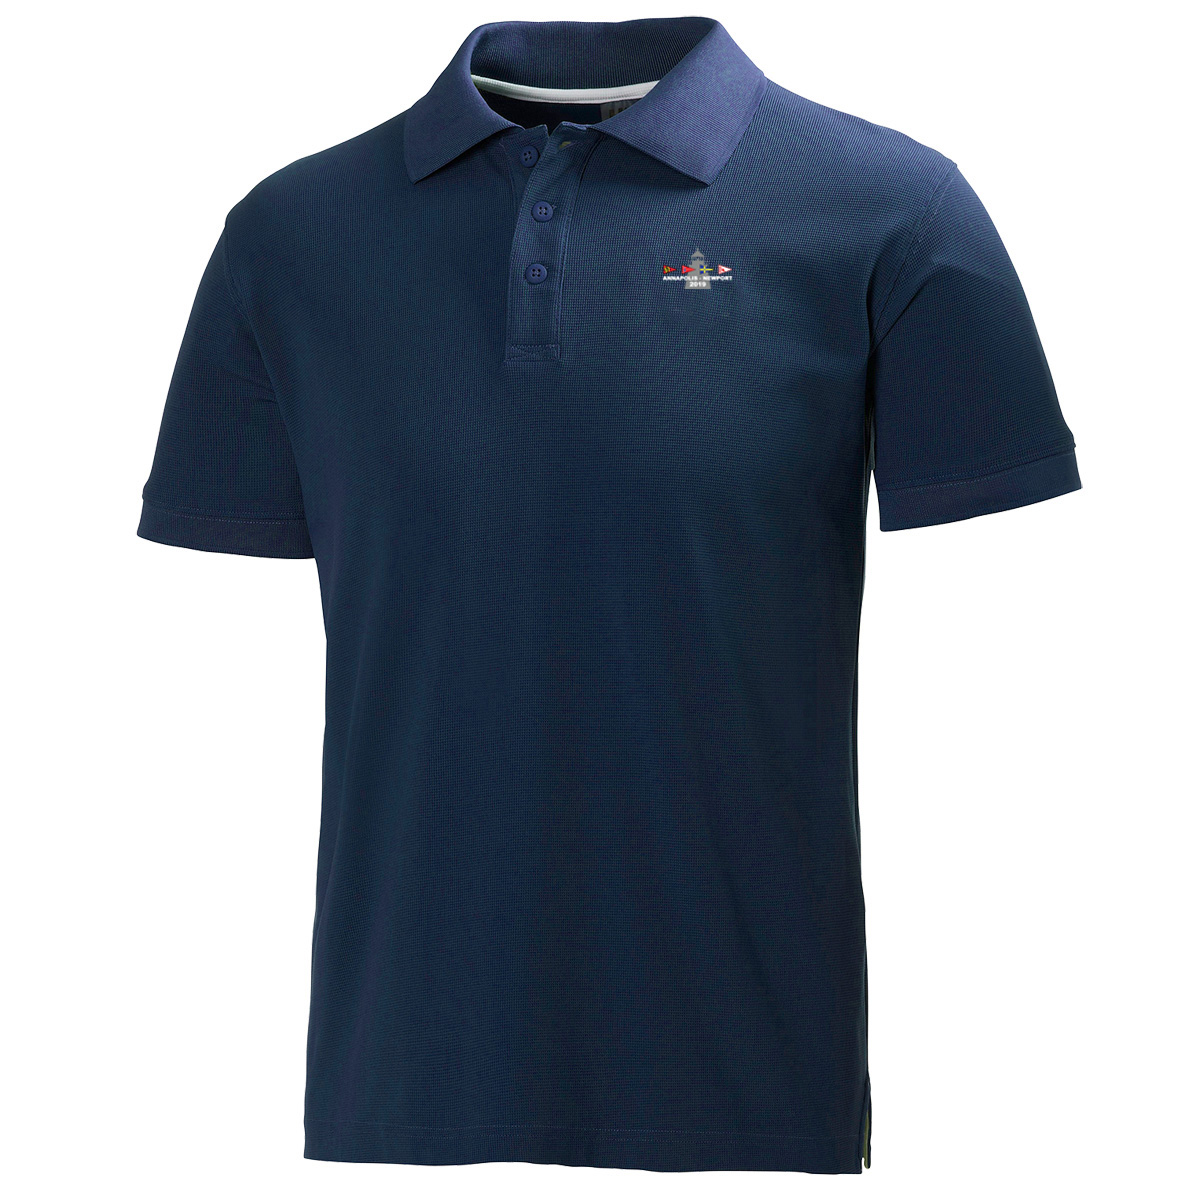 A2N19- MEN'S HELLY HANSEN RIFTLINE TECH POLO